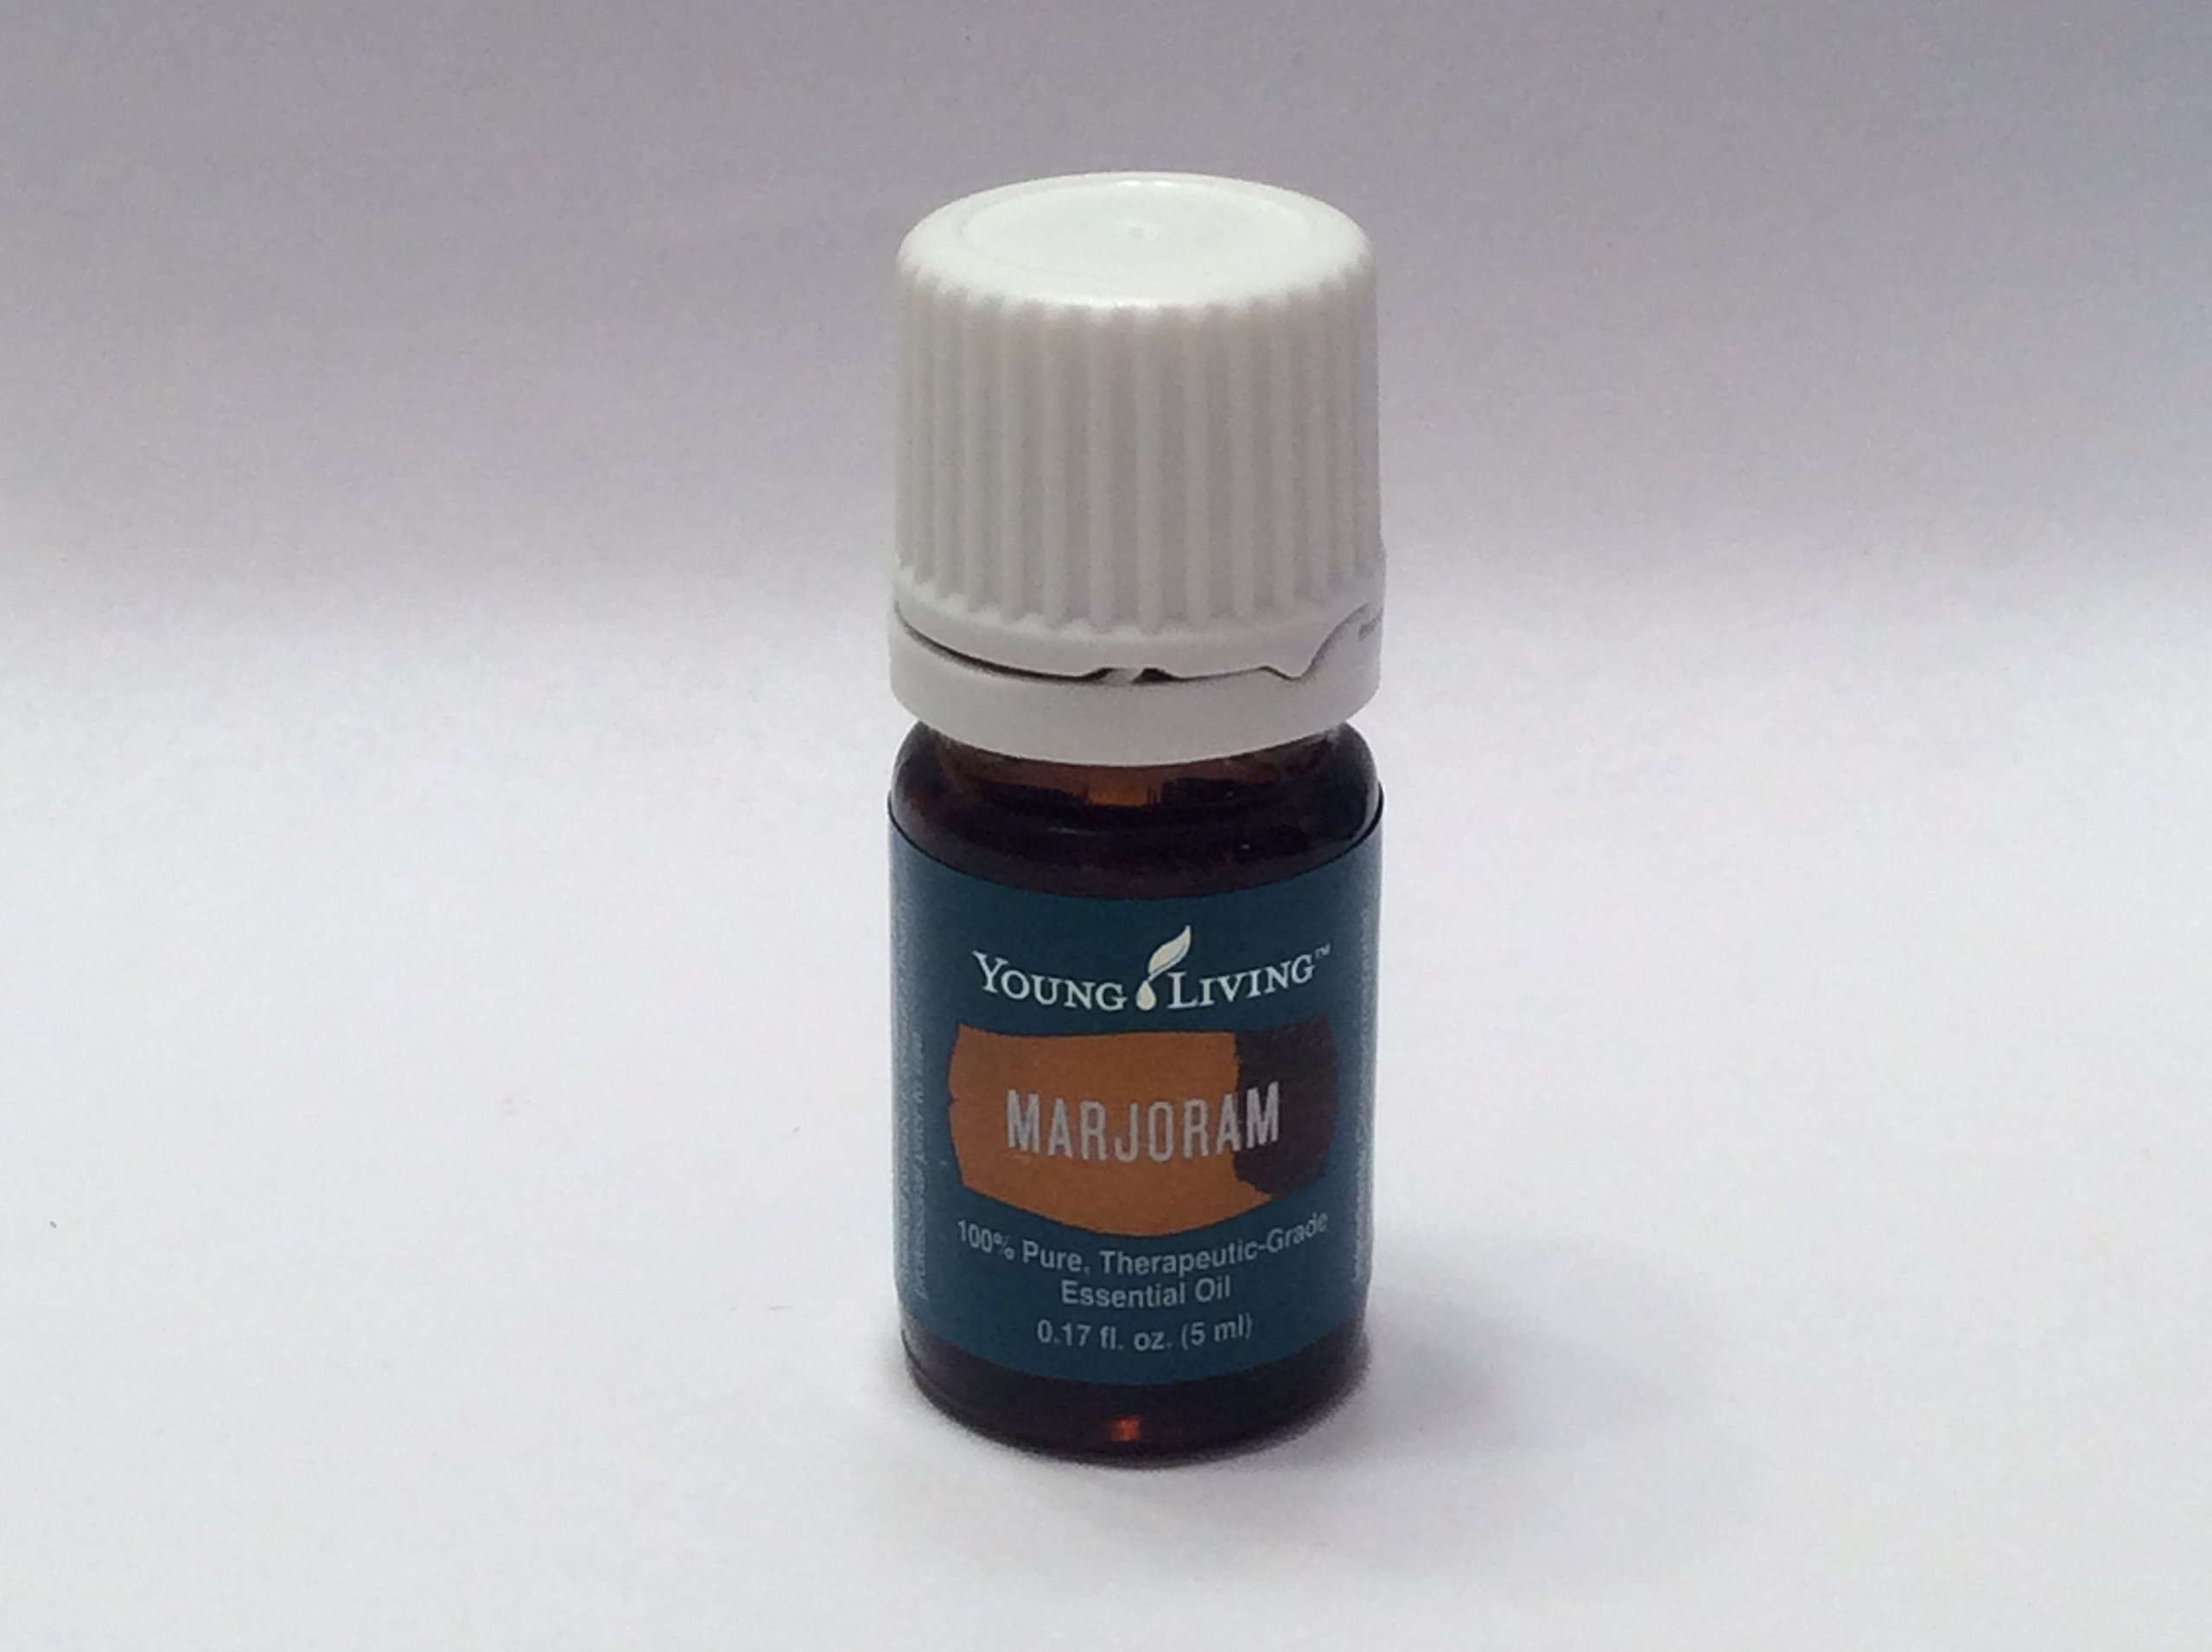 Marjoram Essential Oil 5ml by Young Living Essential Oils